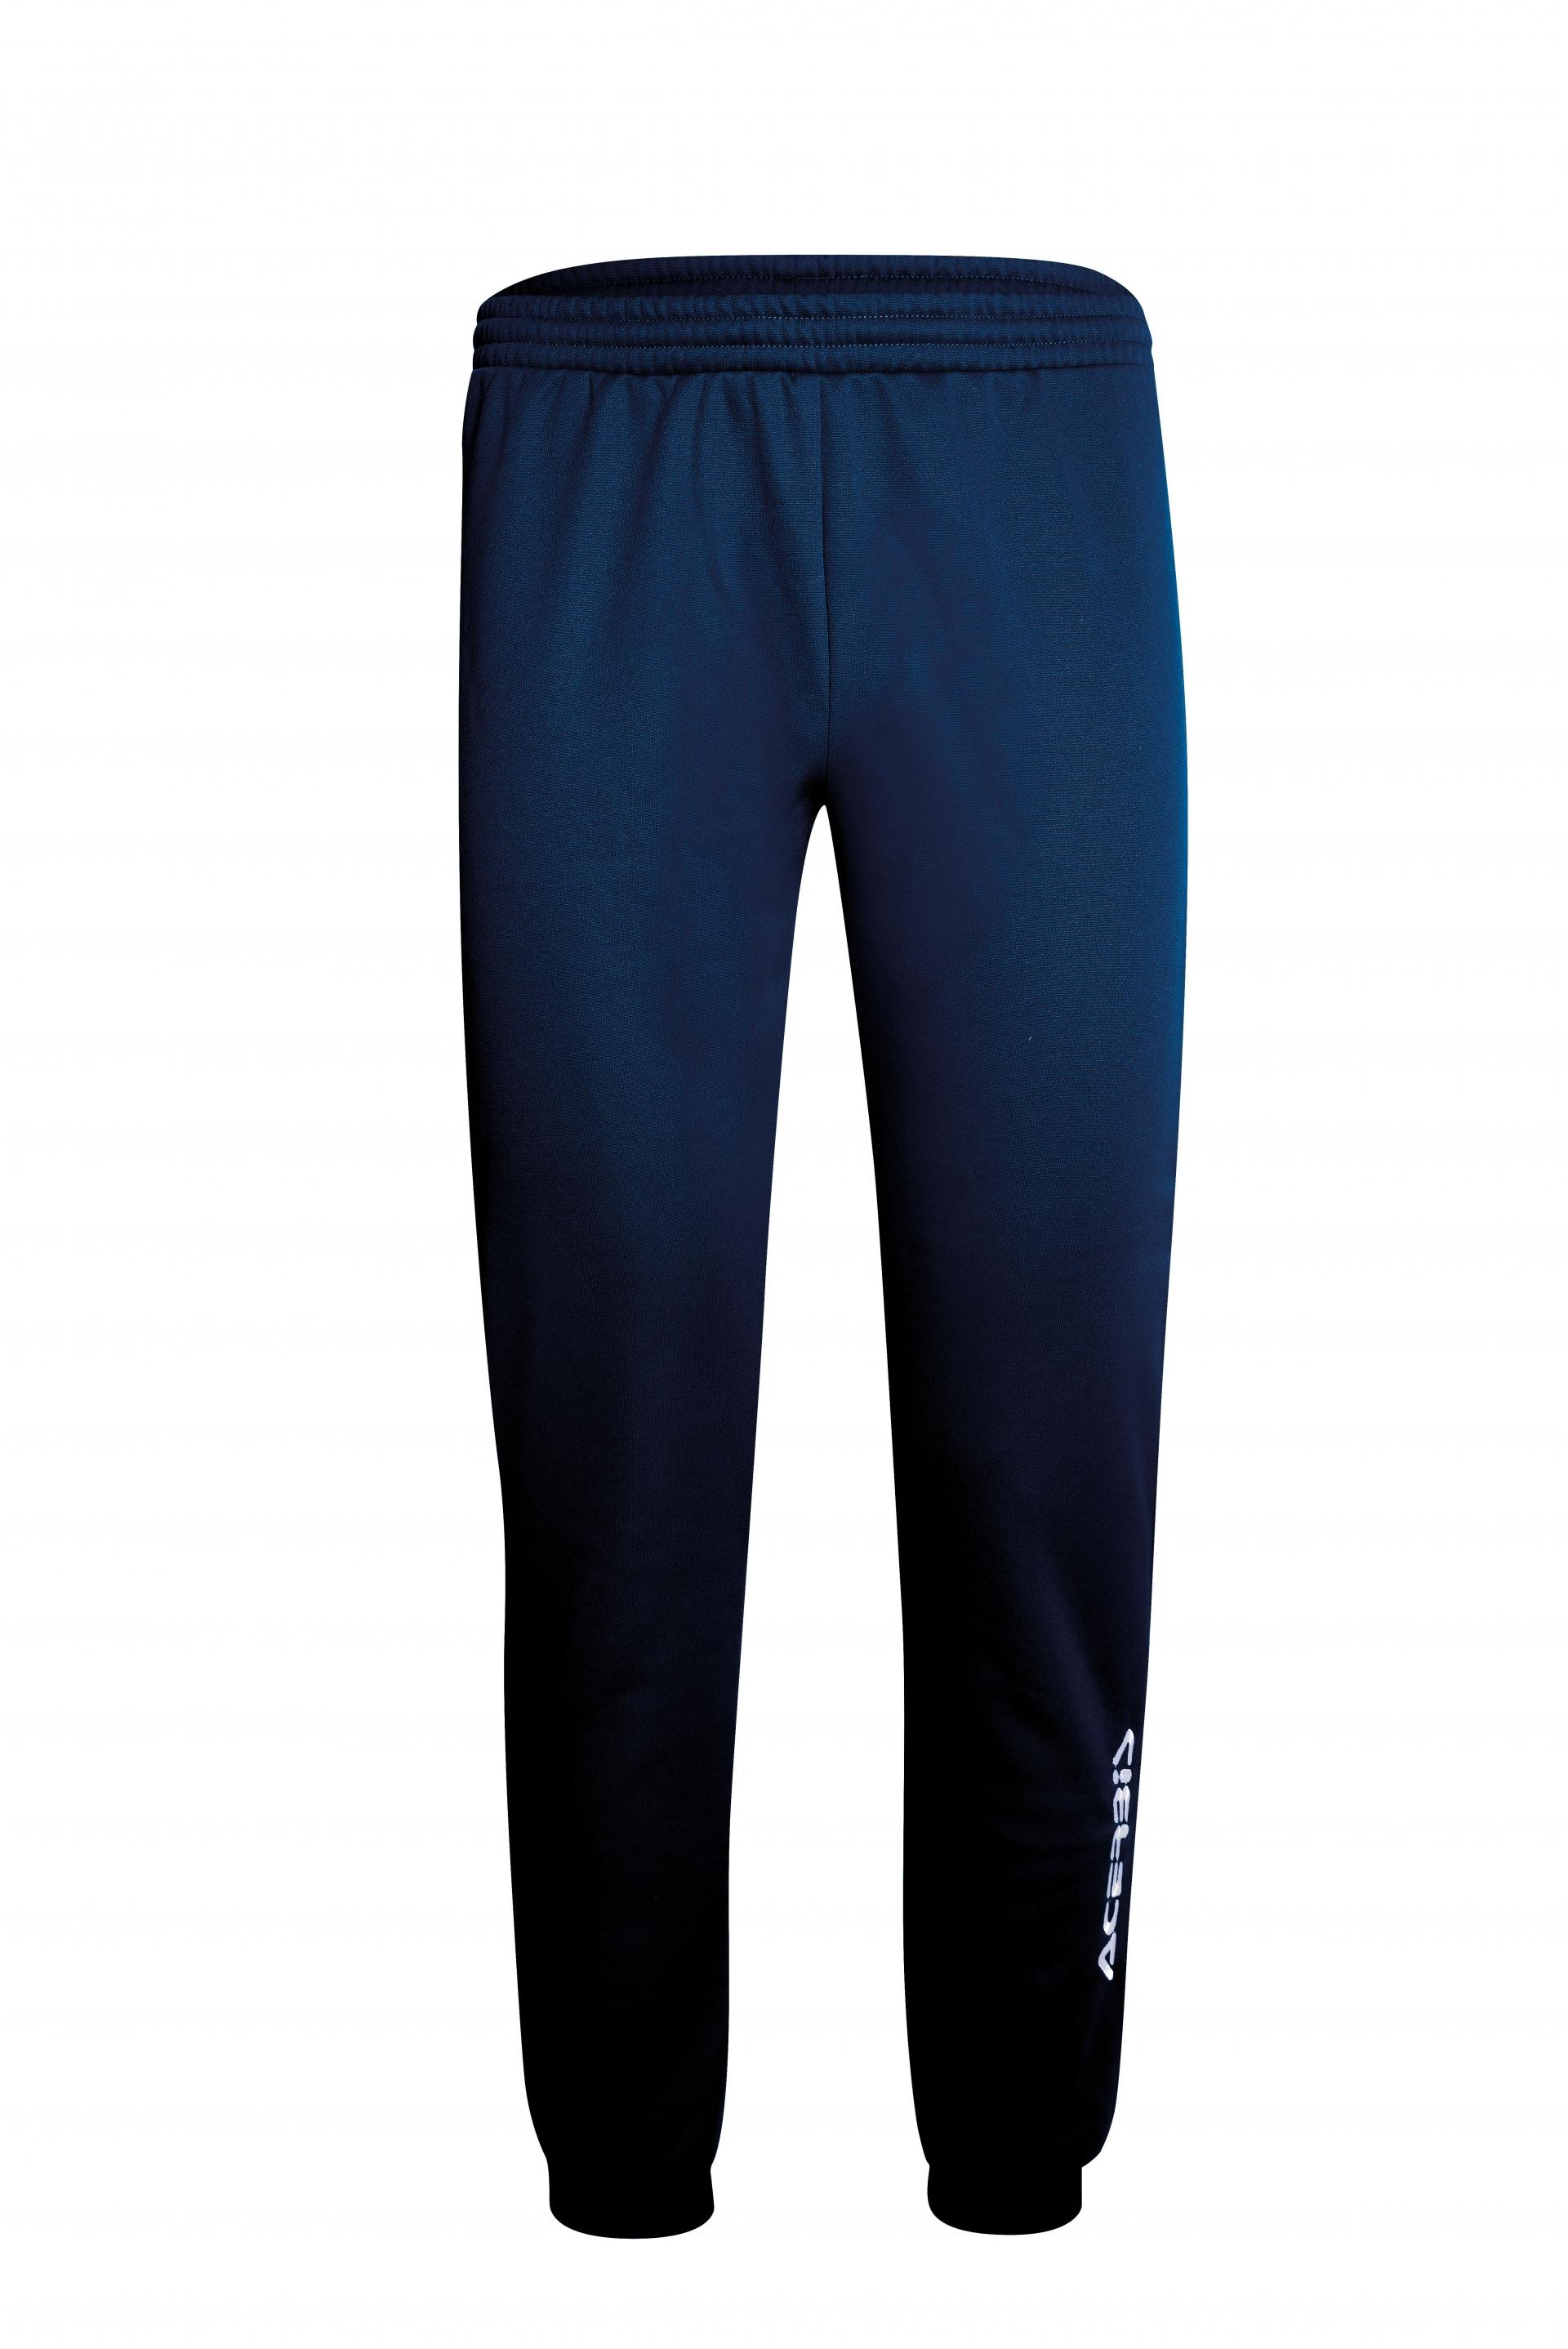 ATLANTIS 2 PANTS